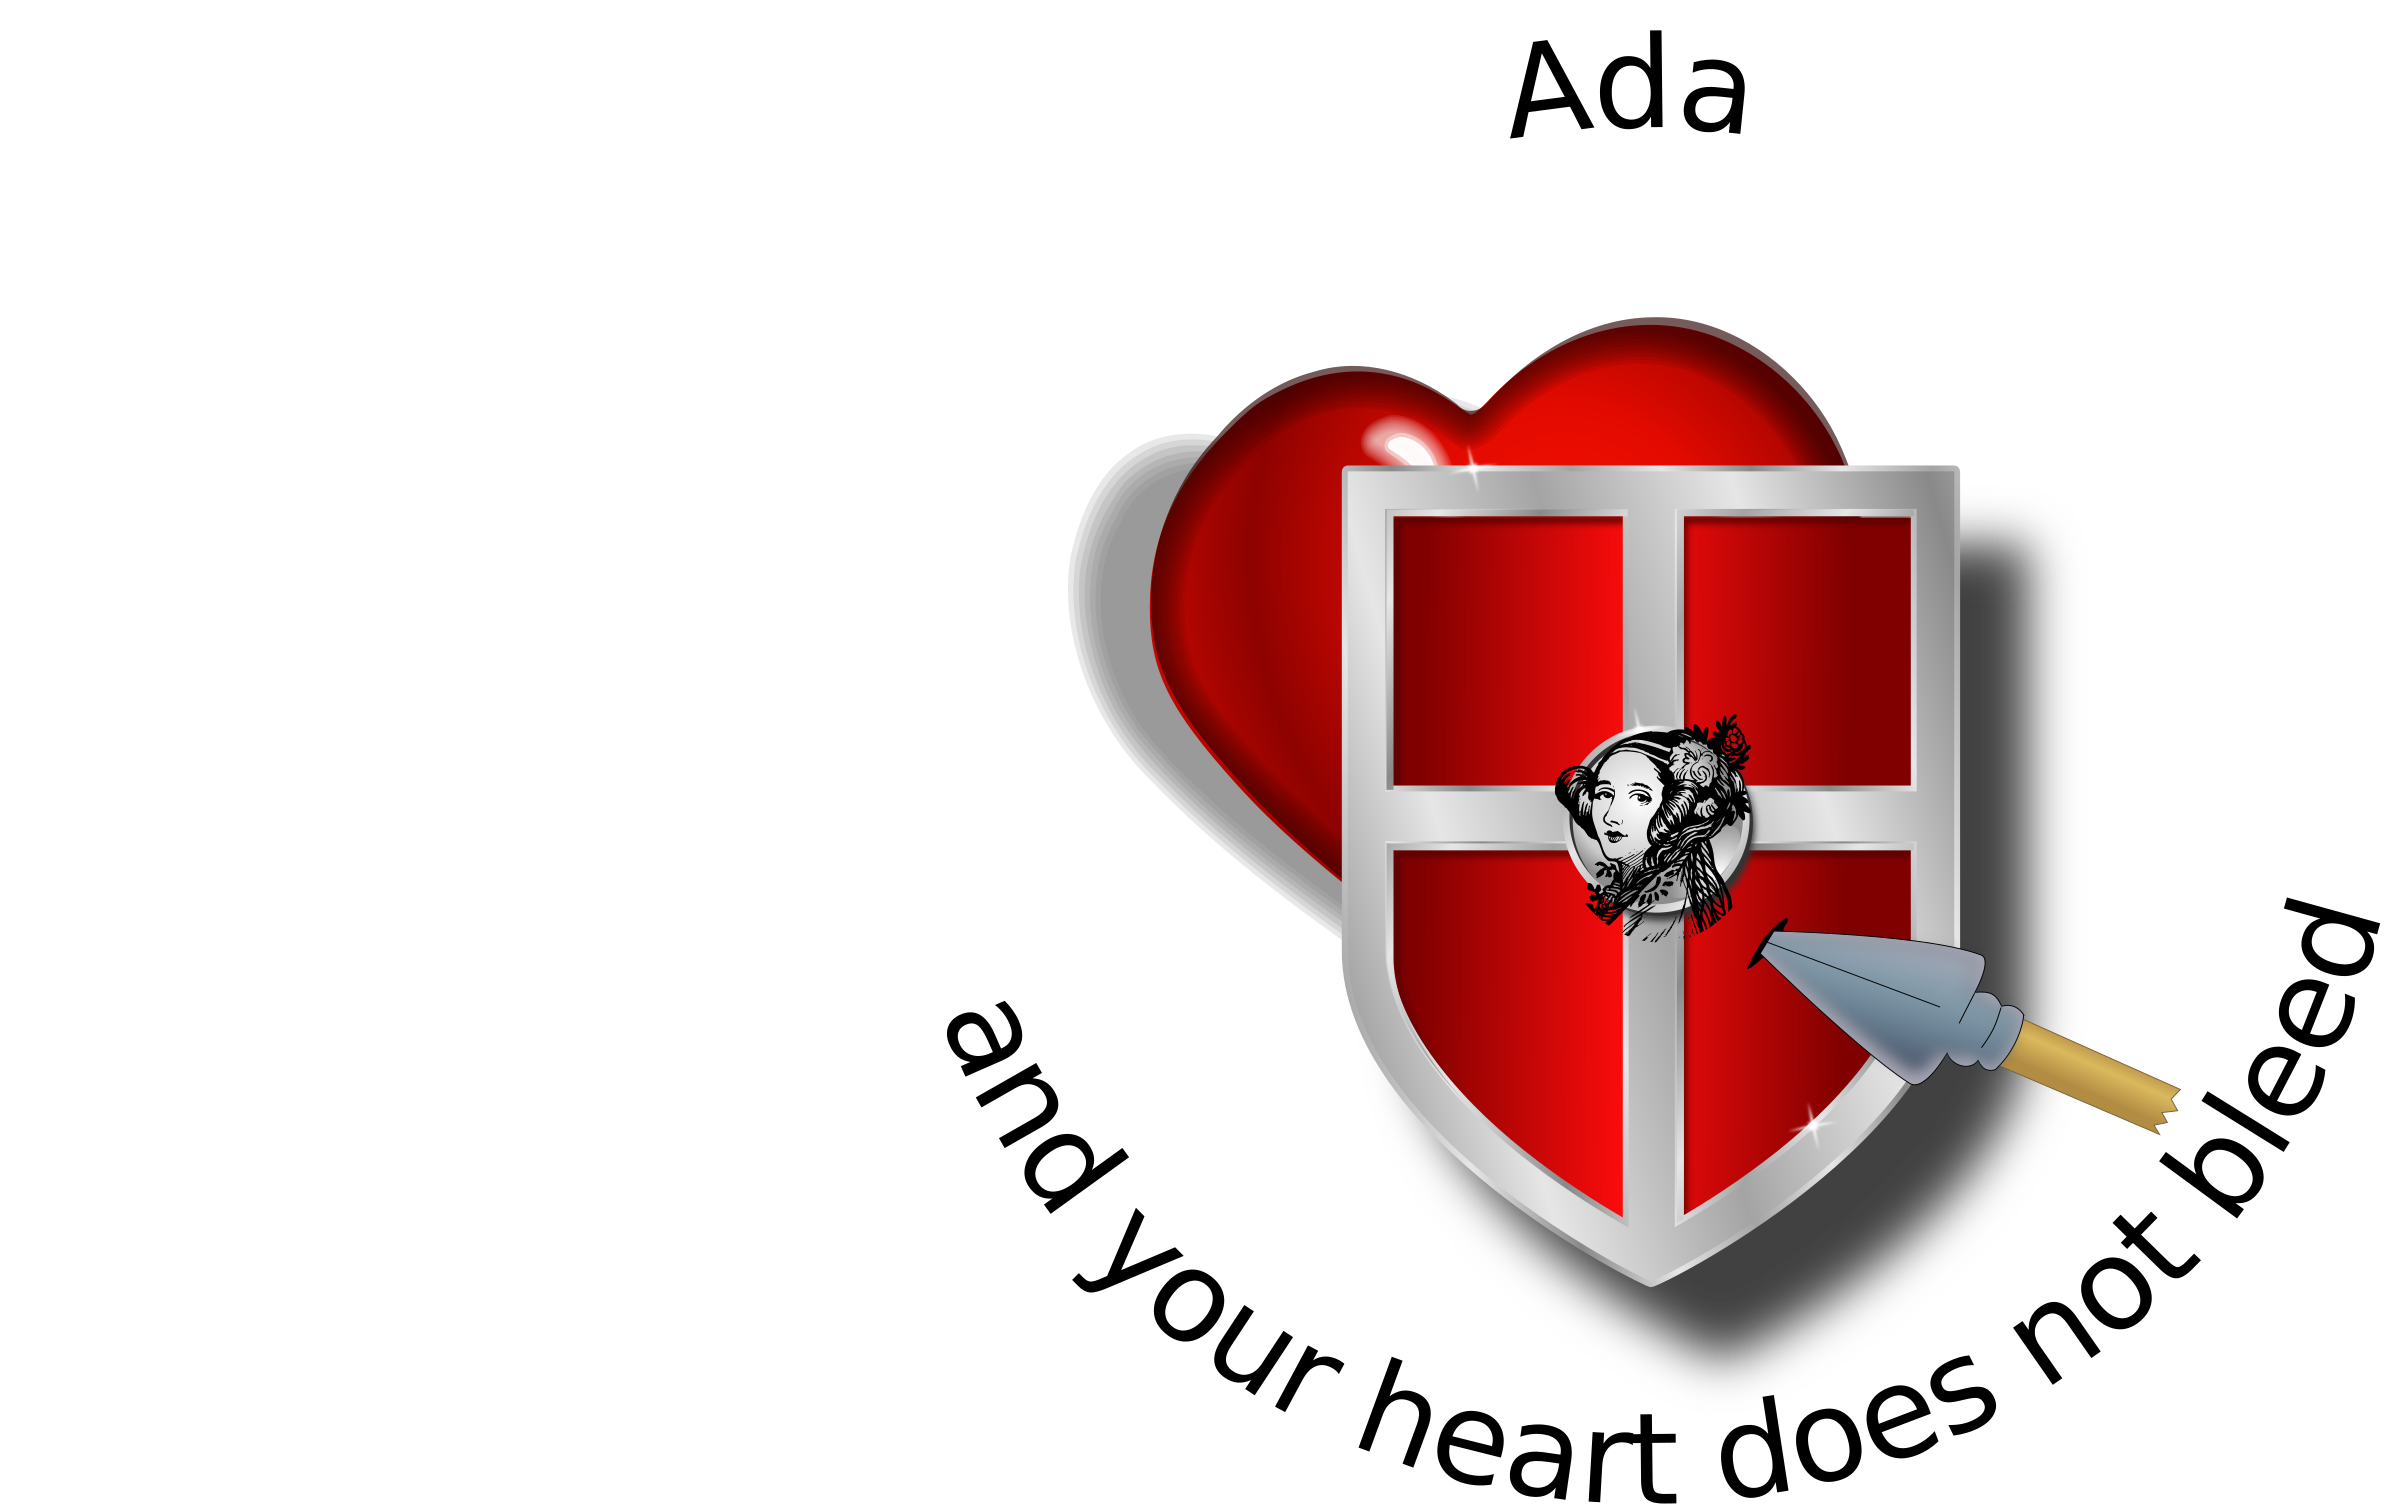 Heartbleed by aagosti